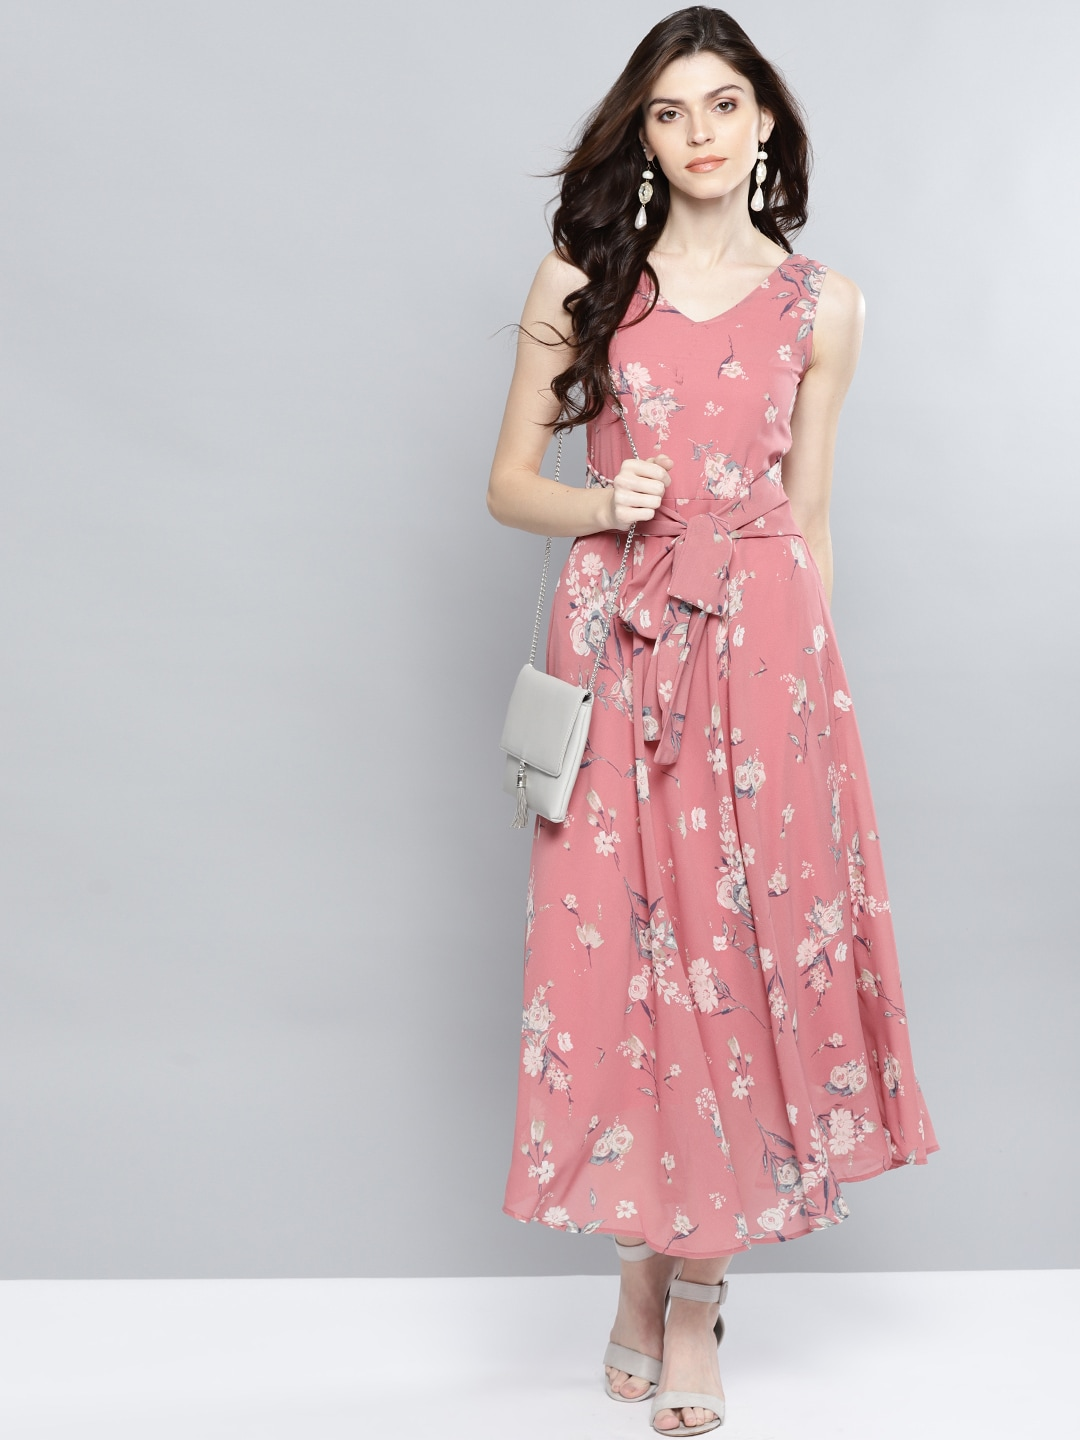 f279fbf71 Dresses For Women - Buy Women Dresses Online - Myntra